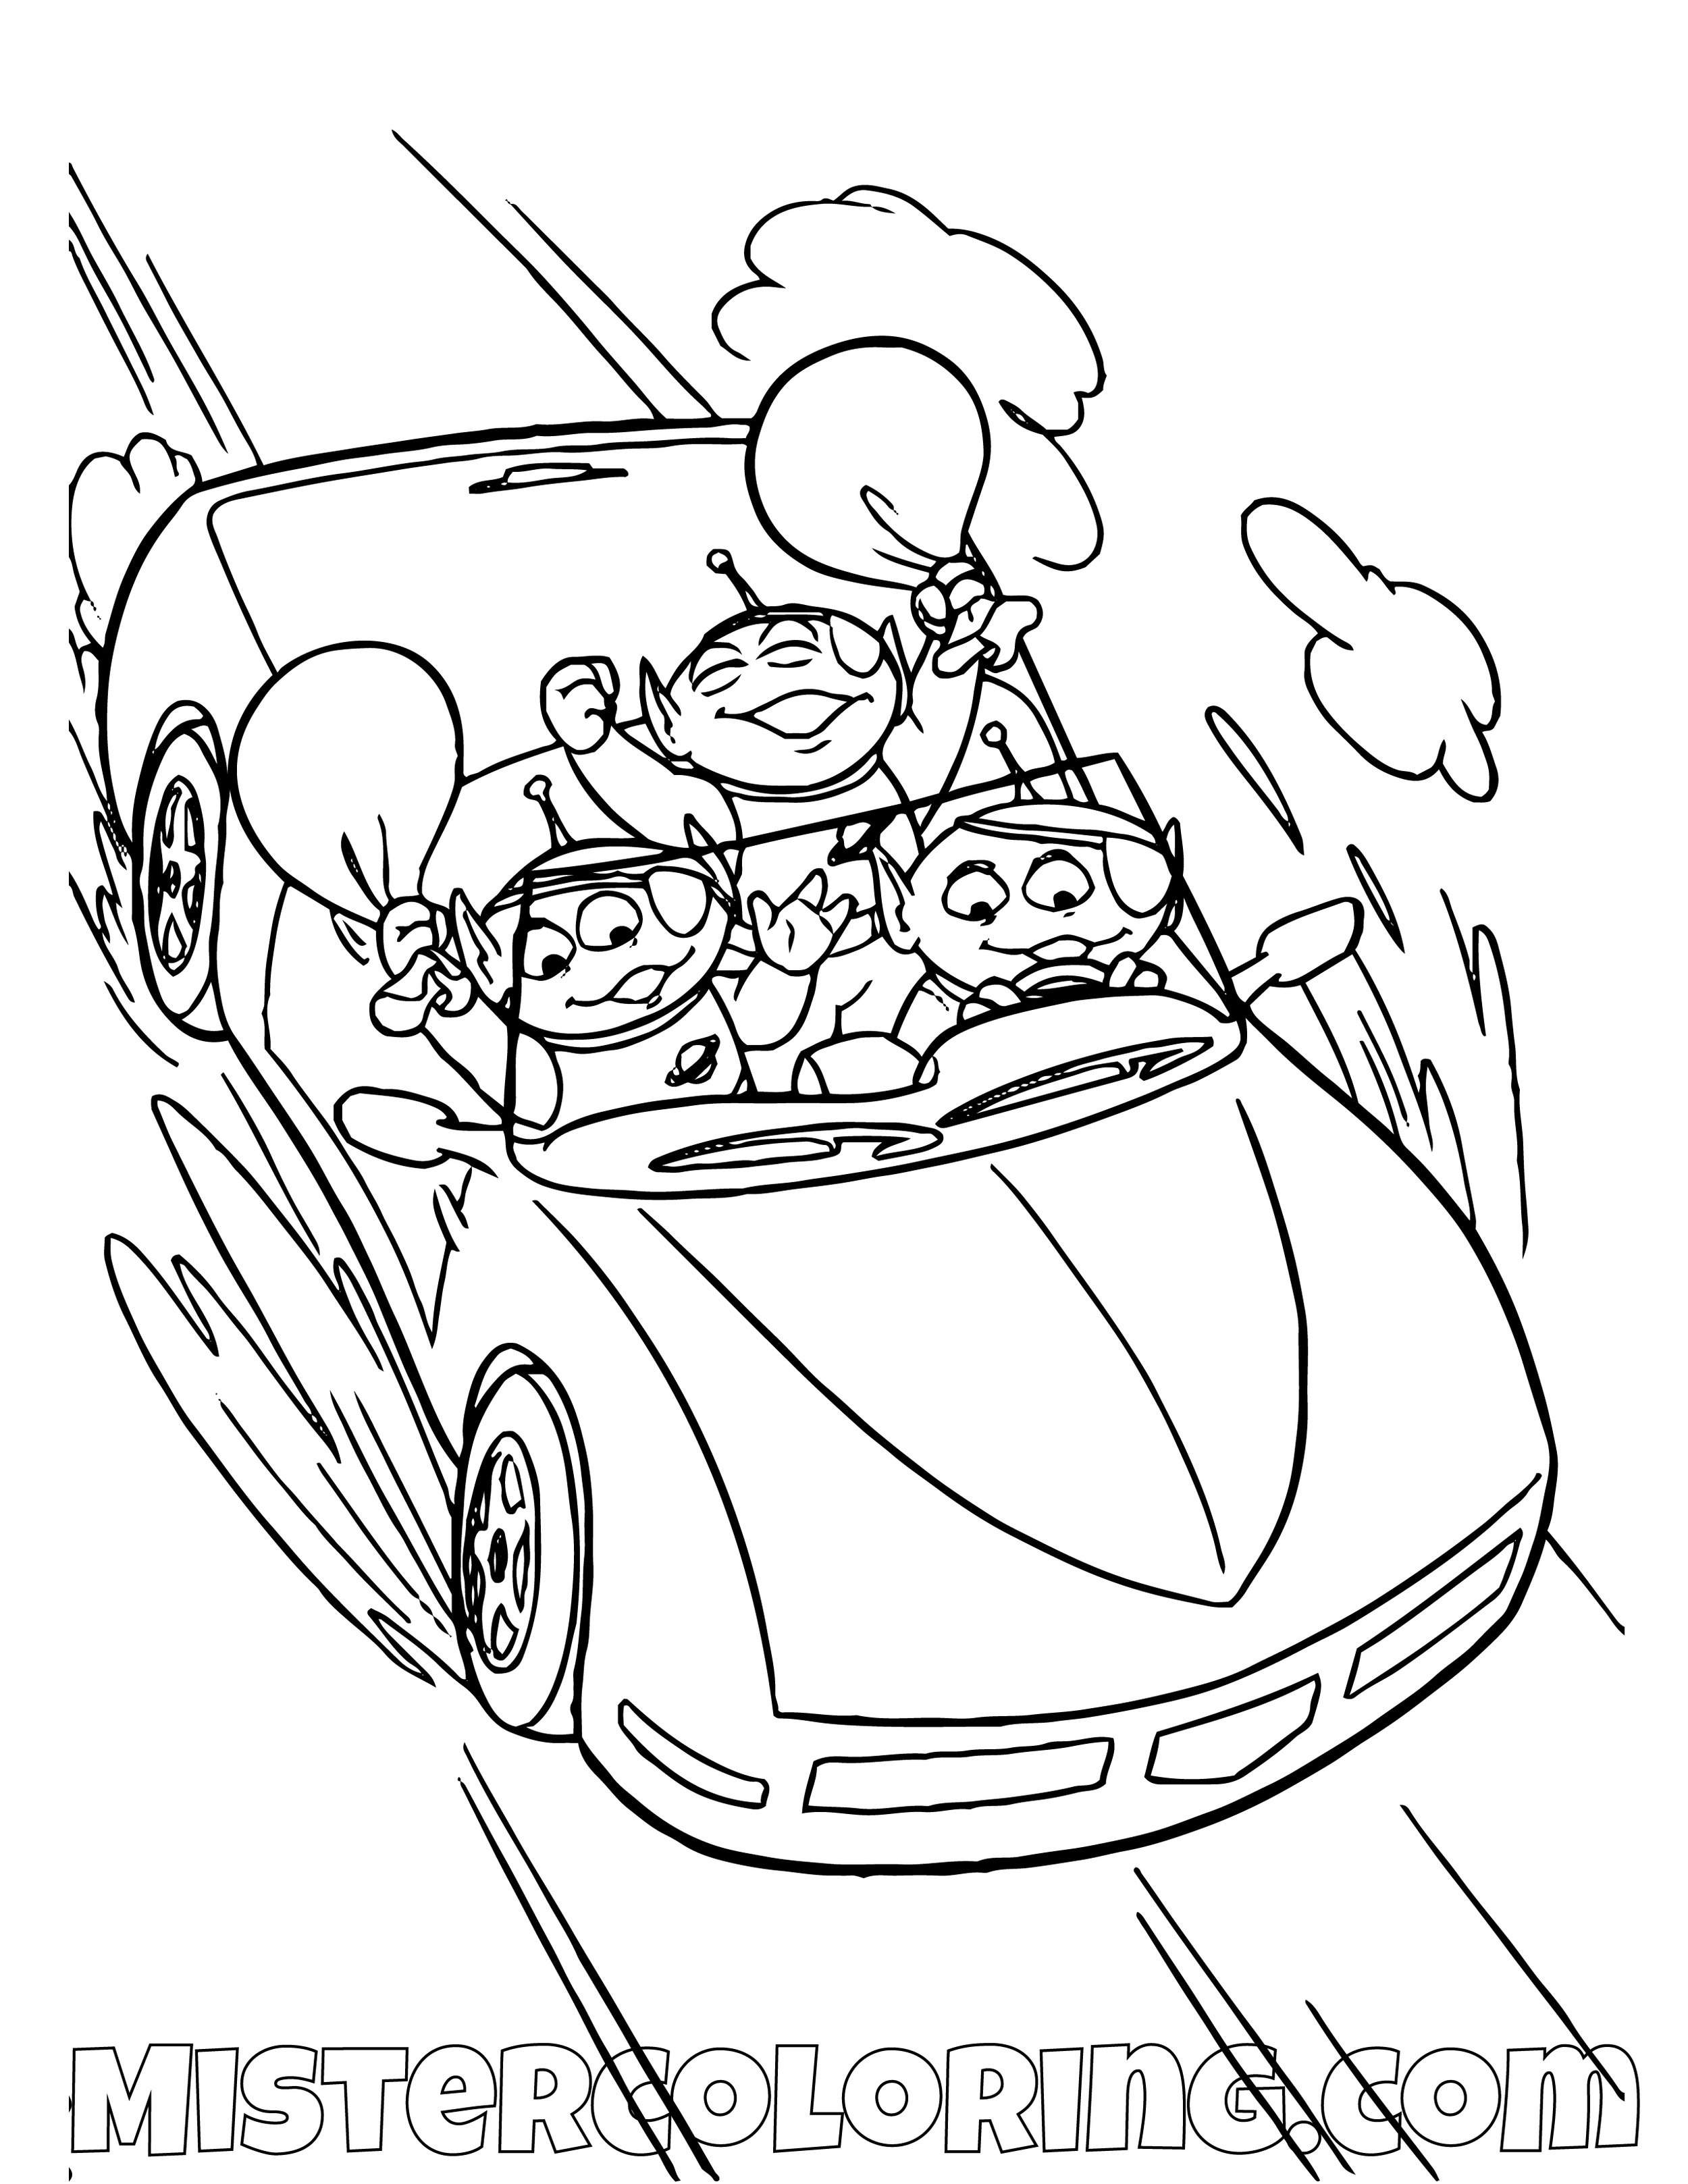 Alien Driving A Car Toy Story Coloring Page